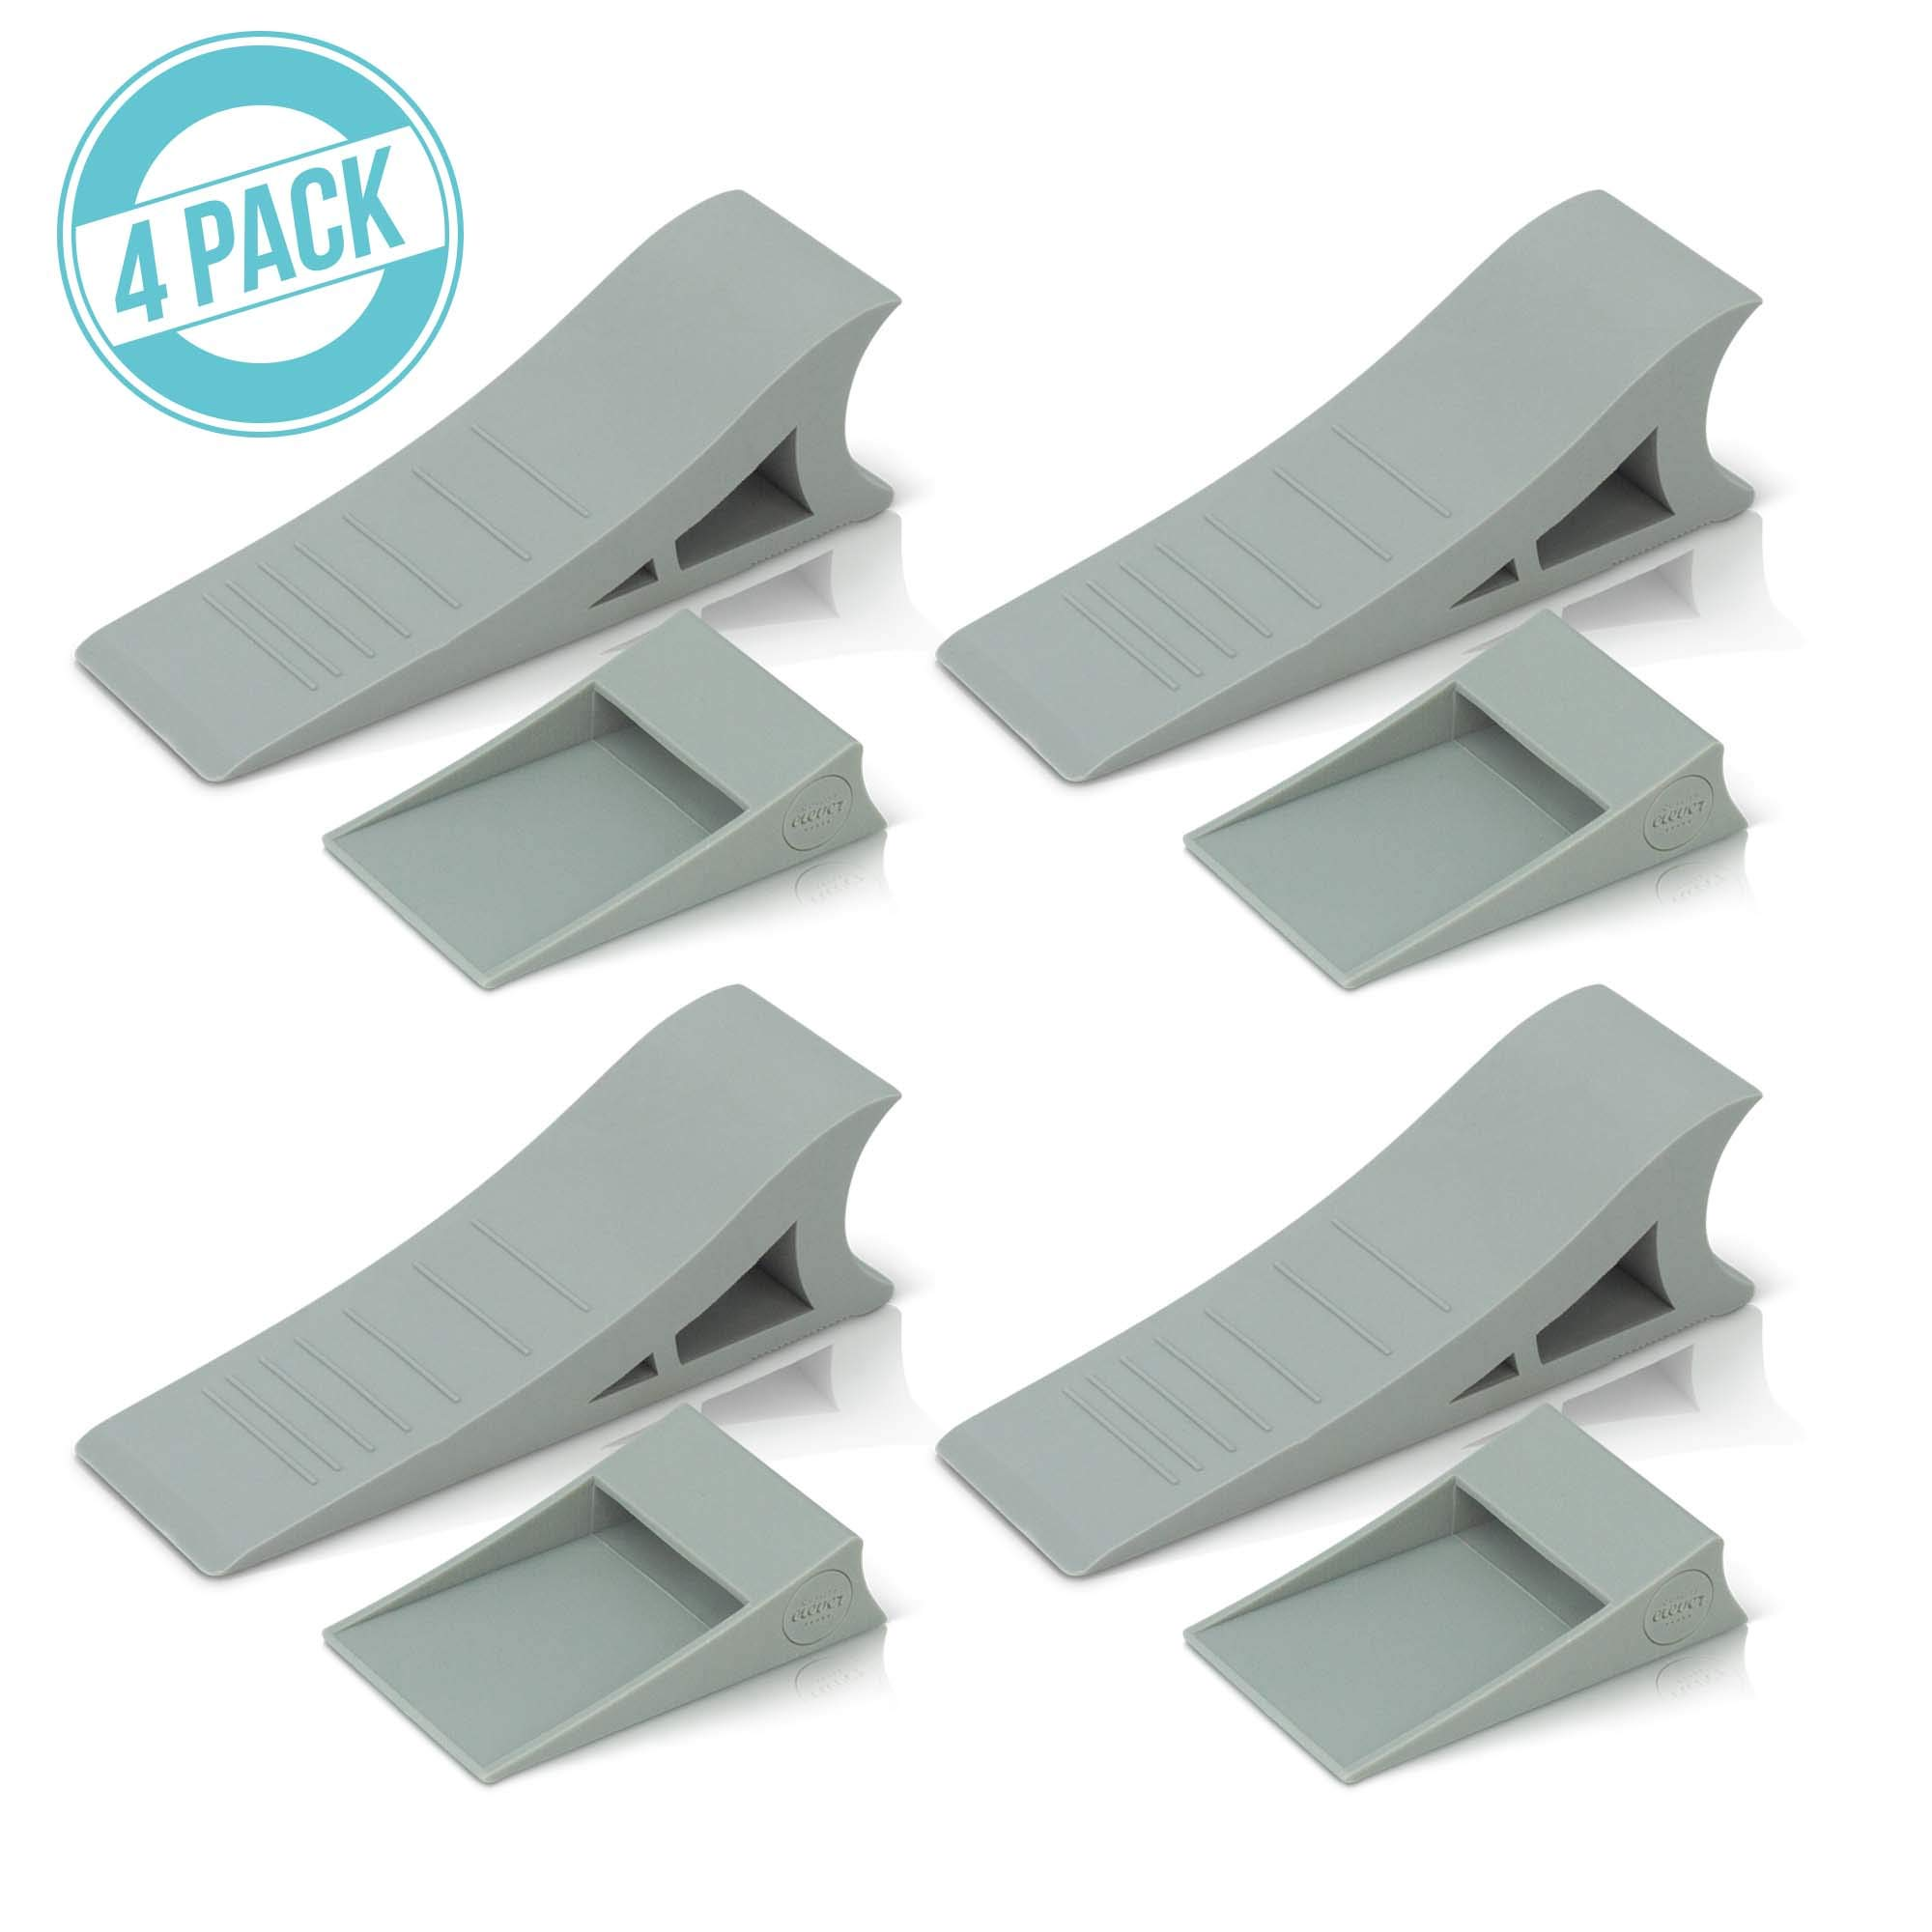 Heavy Duty Rubber Door Stopper - Zero Edge Door Wedge Stops All Doors, Gaps to 1.5 Inch on All Surfaces - Door Stopper Wall Mount Hangs Up When Not In Use for No-Bending Easy Access by Quality Clever